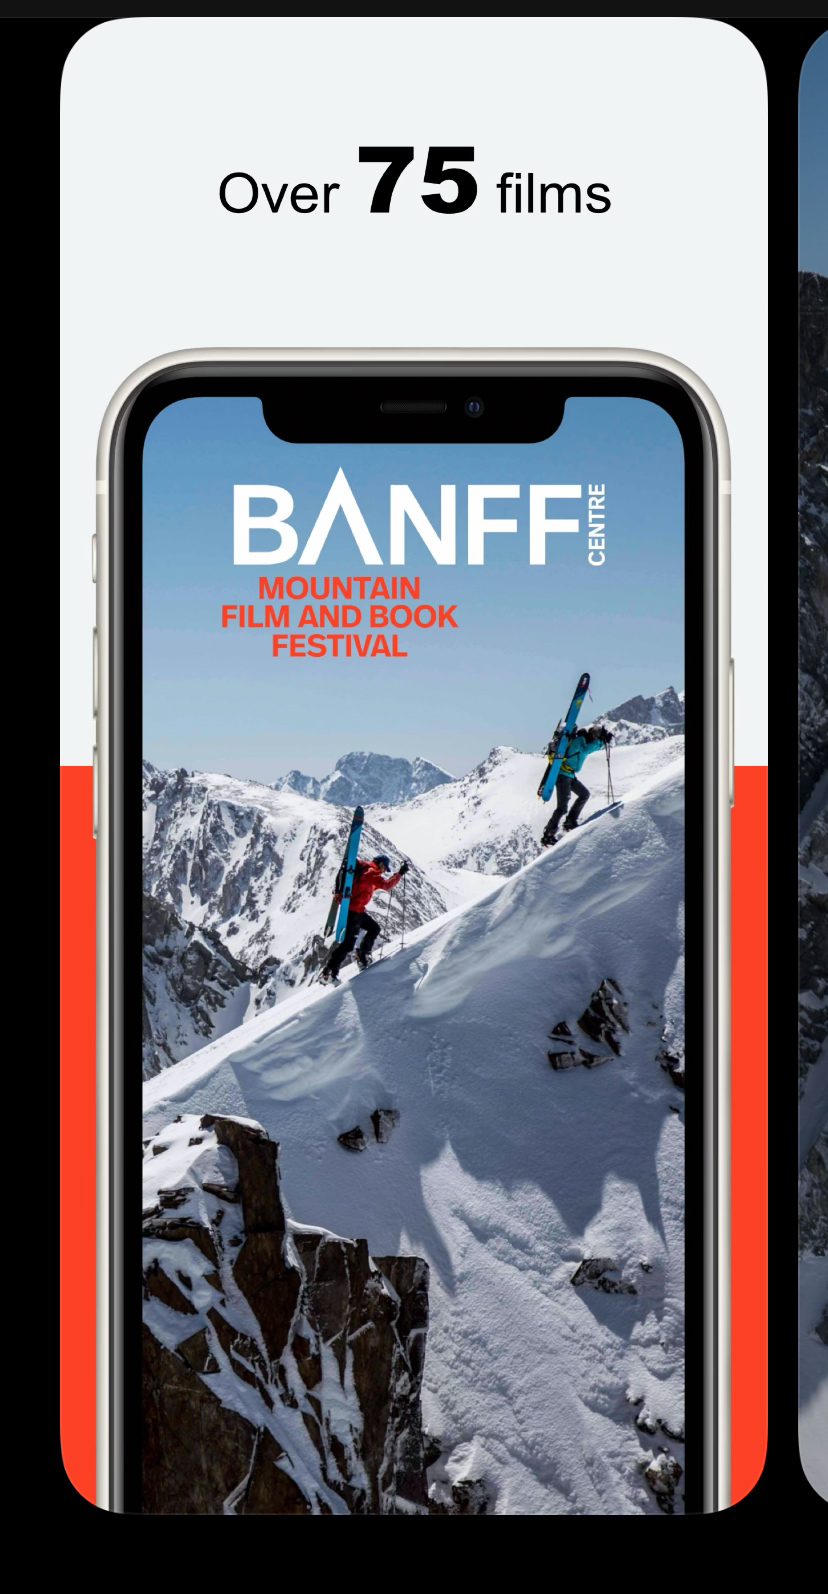 The Banff Mountain Festival App displaying on an iphone.